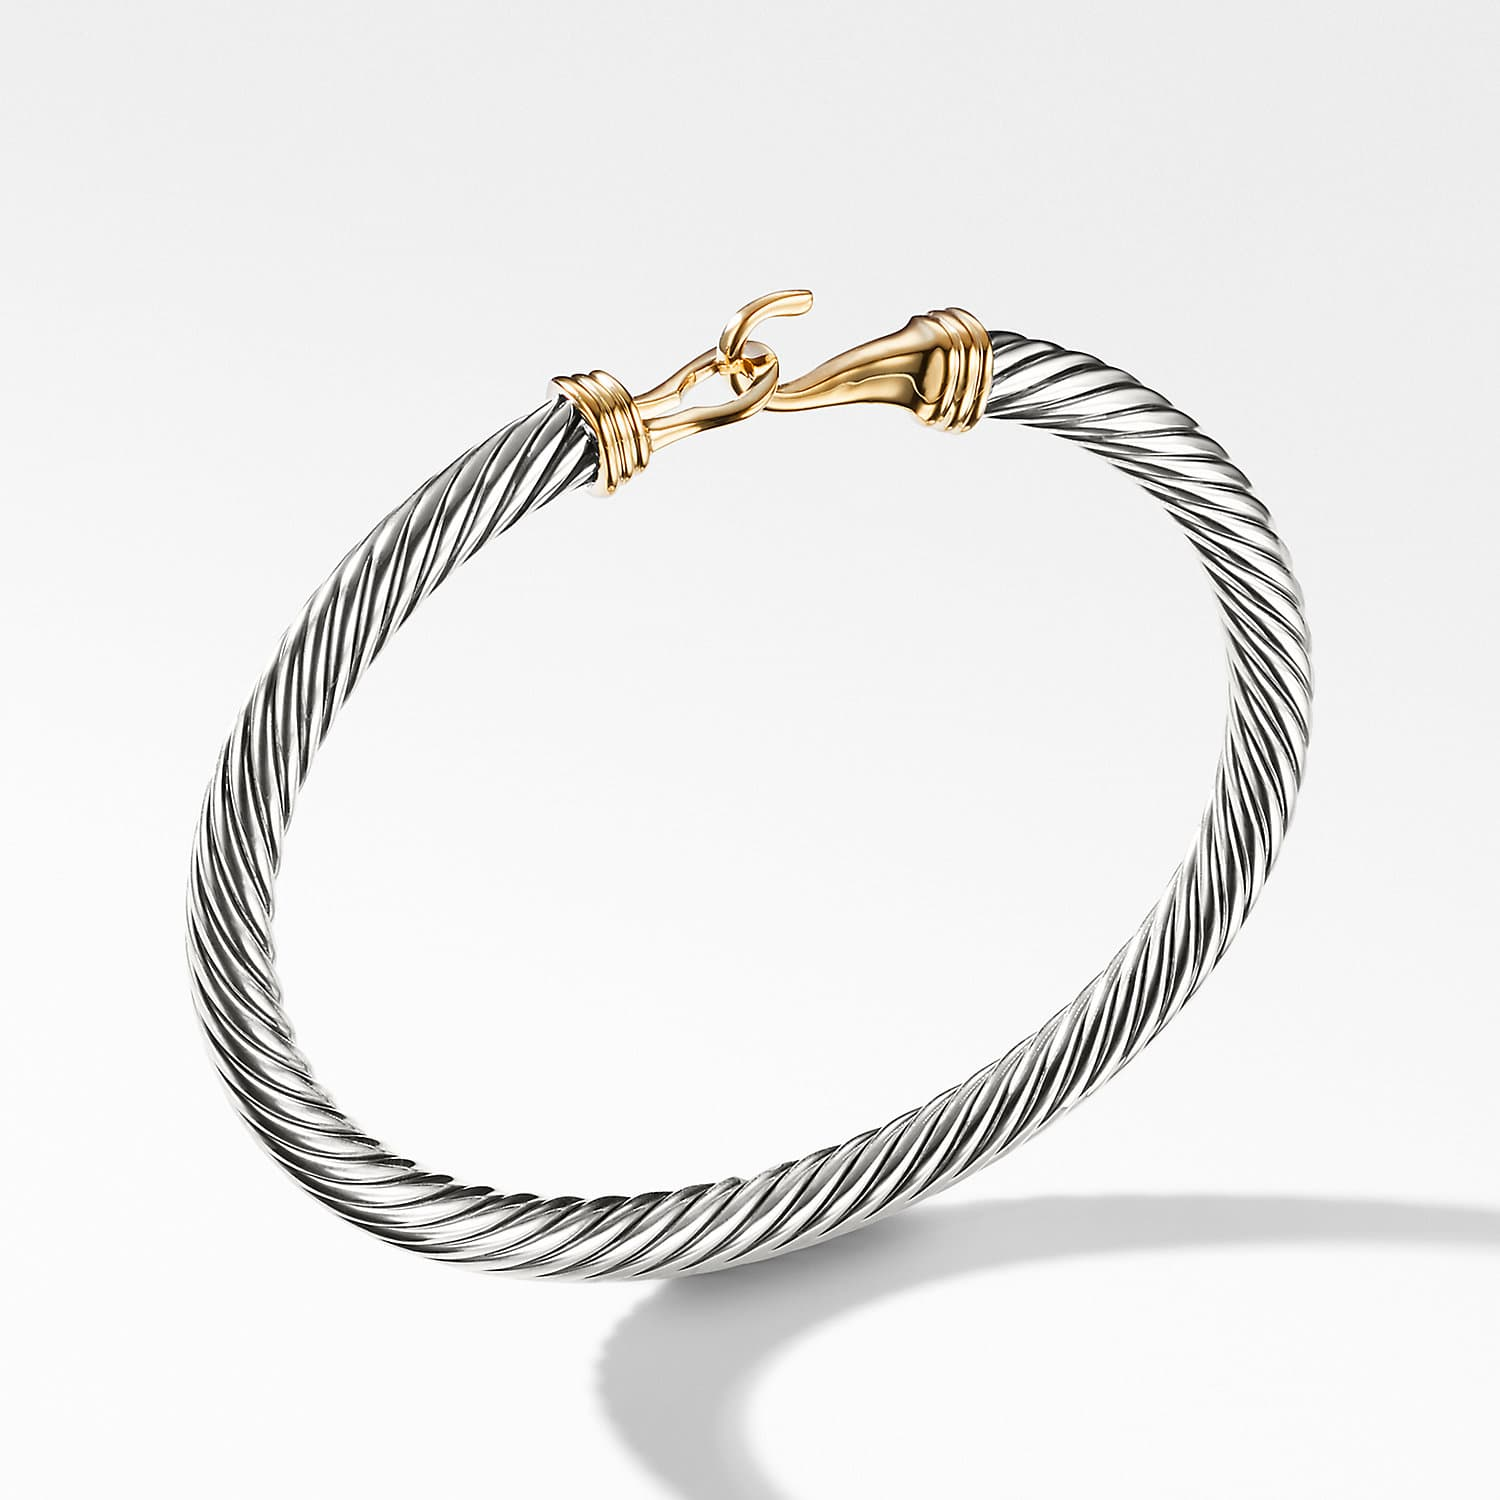 Cable Clic Buckle Bracelet With 14k Gold 5mm Product Image